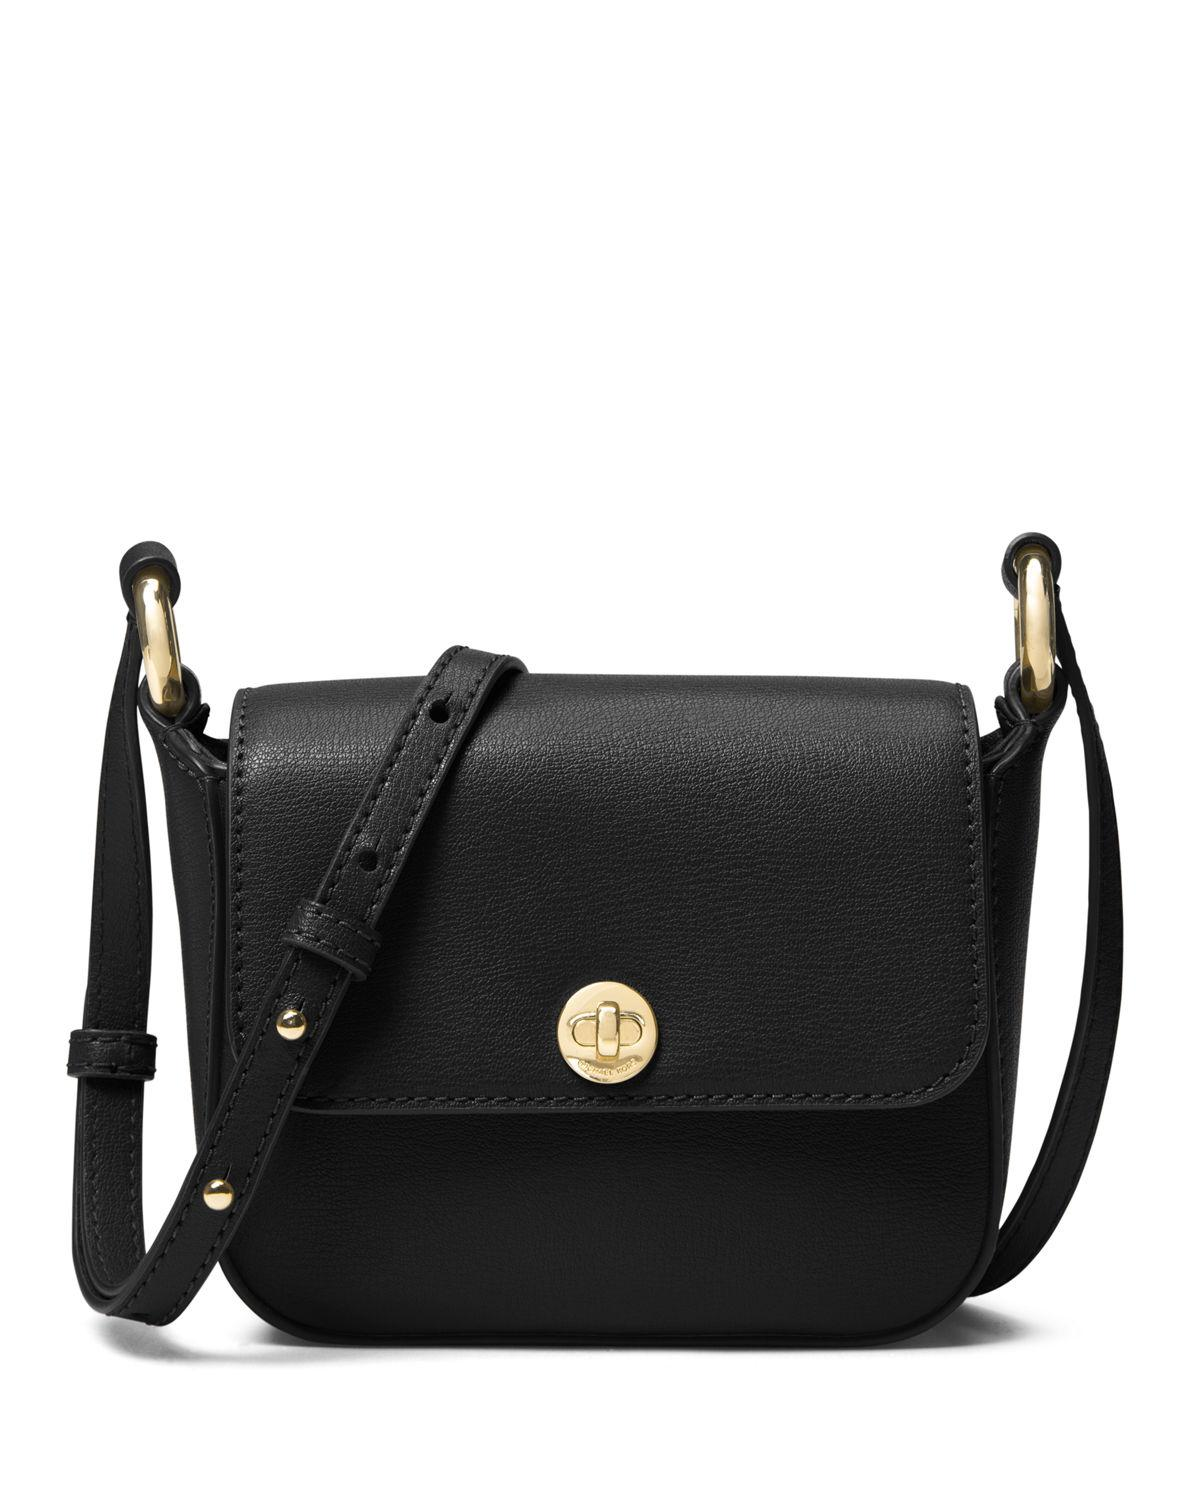 3bfaaa53d946 Lyst - MICHAEL Michael Kors Rivington Large Flap Crossbody Bag in Black